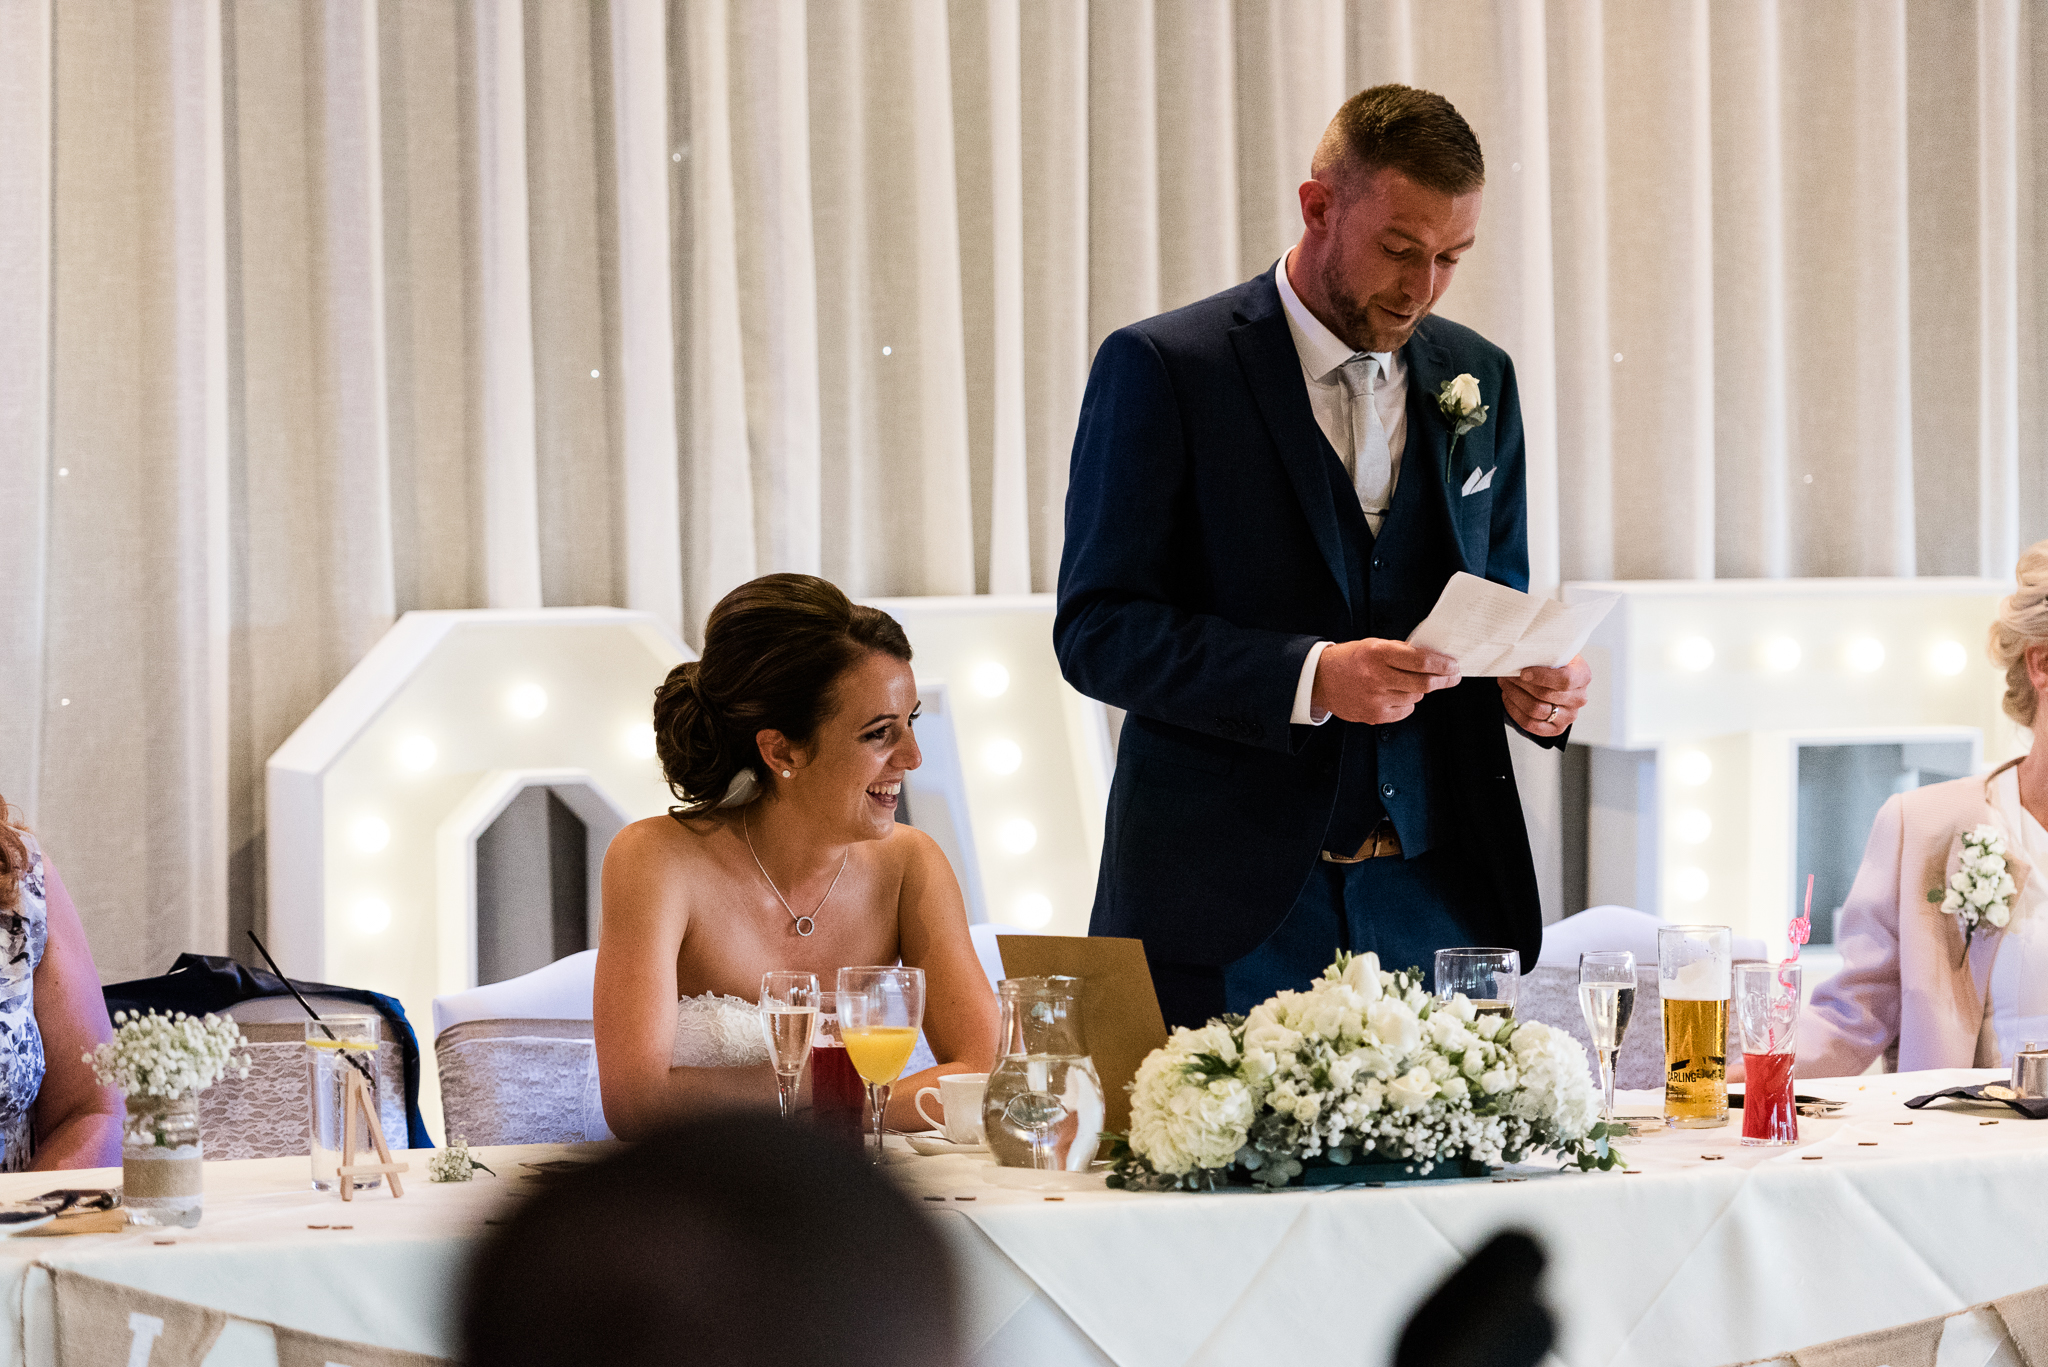 Staffordshire Moorlands Documentary Wedding Photography at The Three Horseshoes, Blackshaw Moor - Jenny Harper-29.jpg